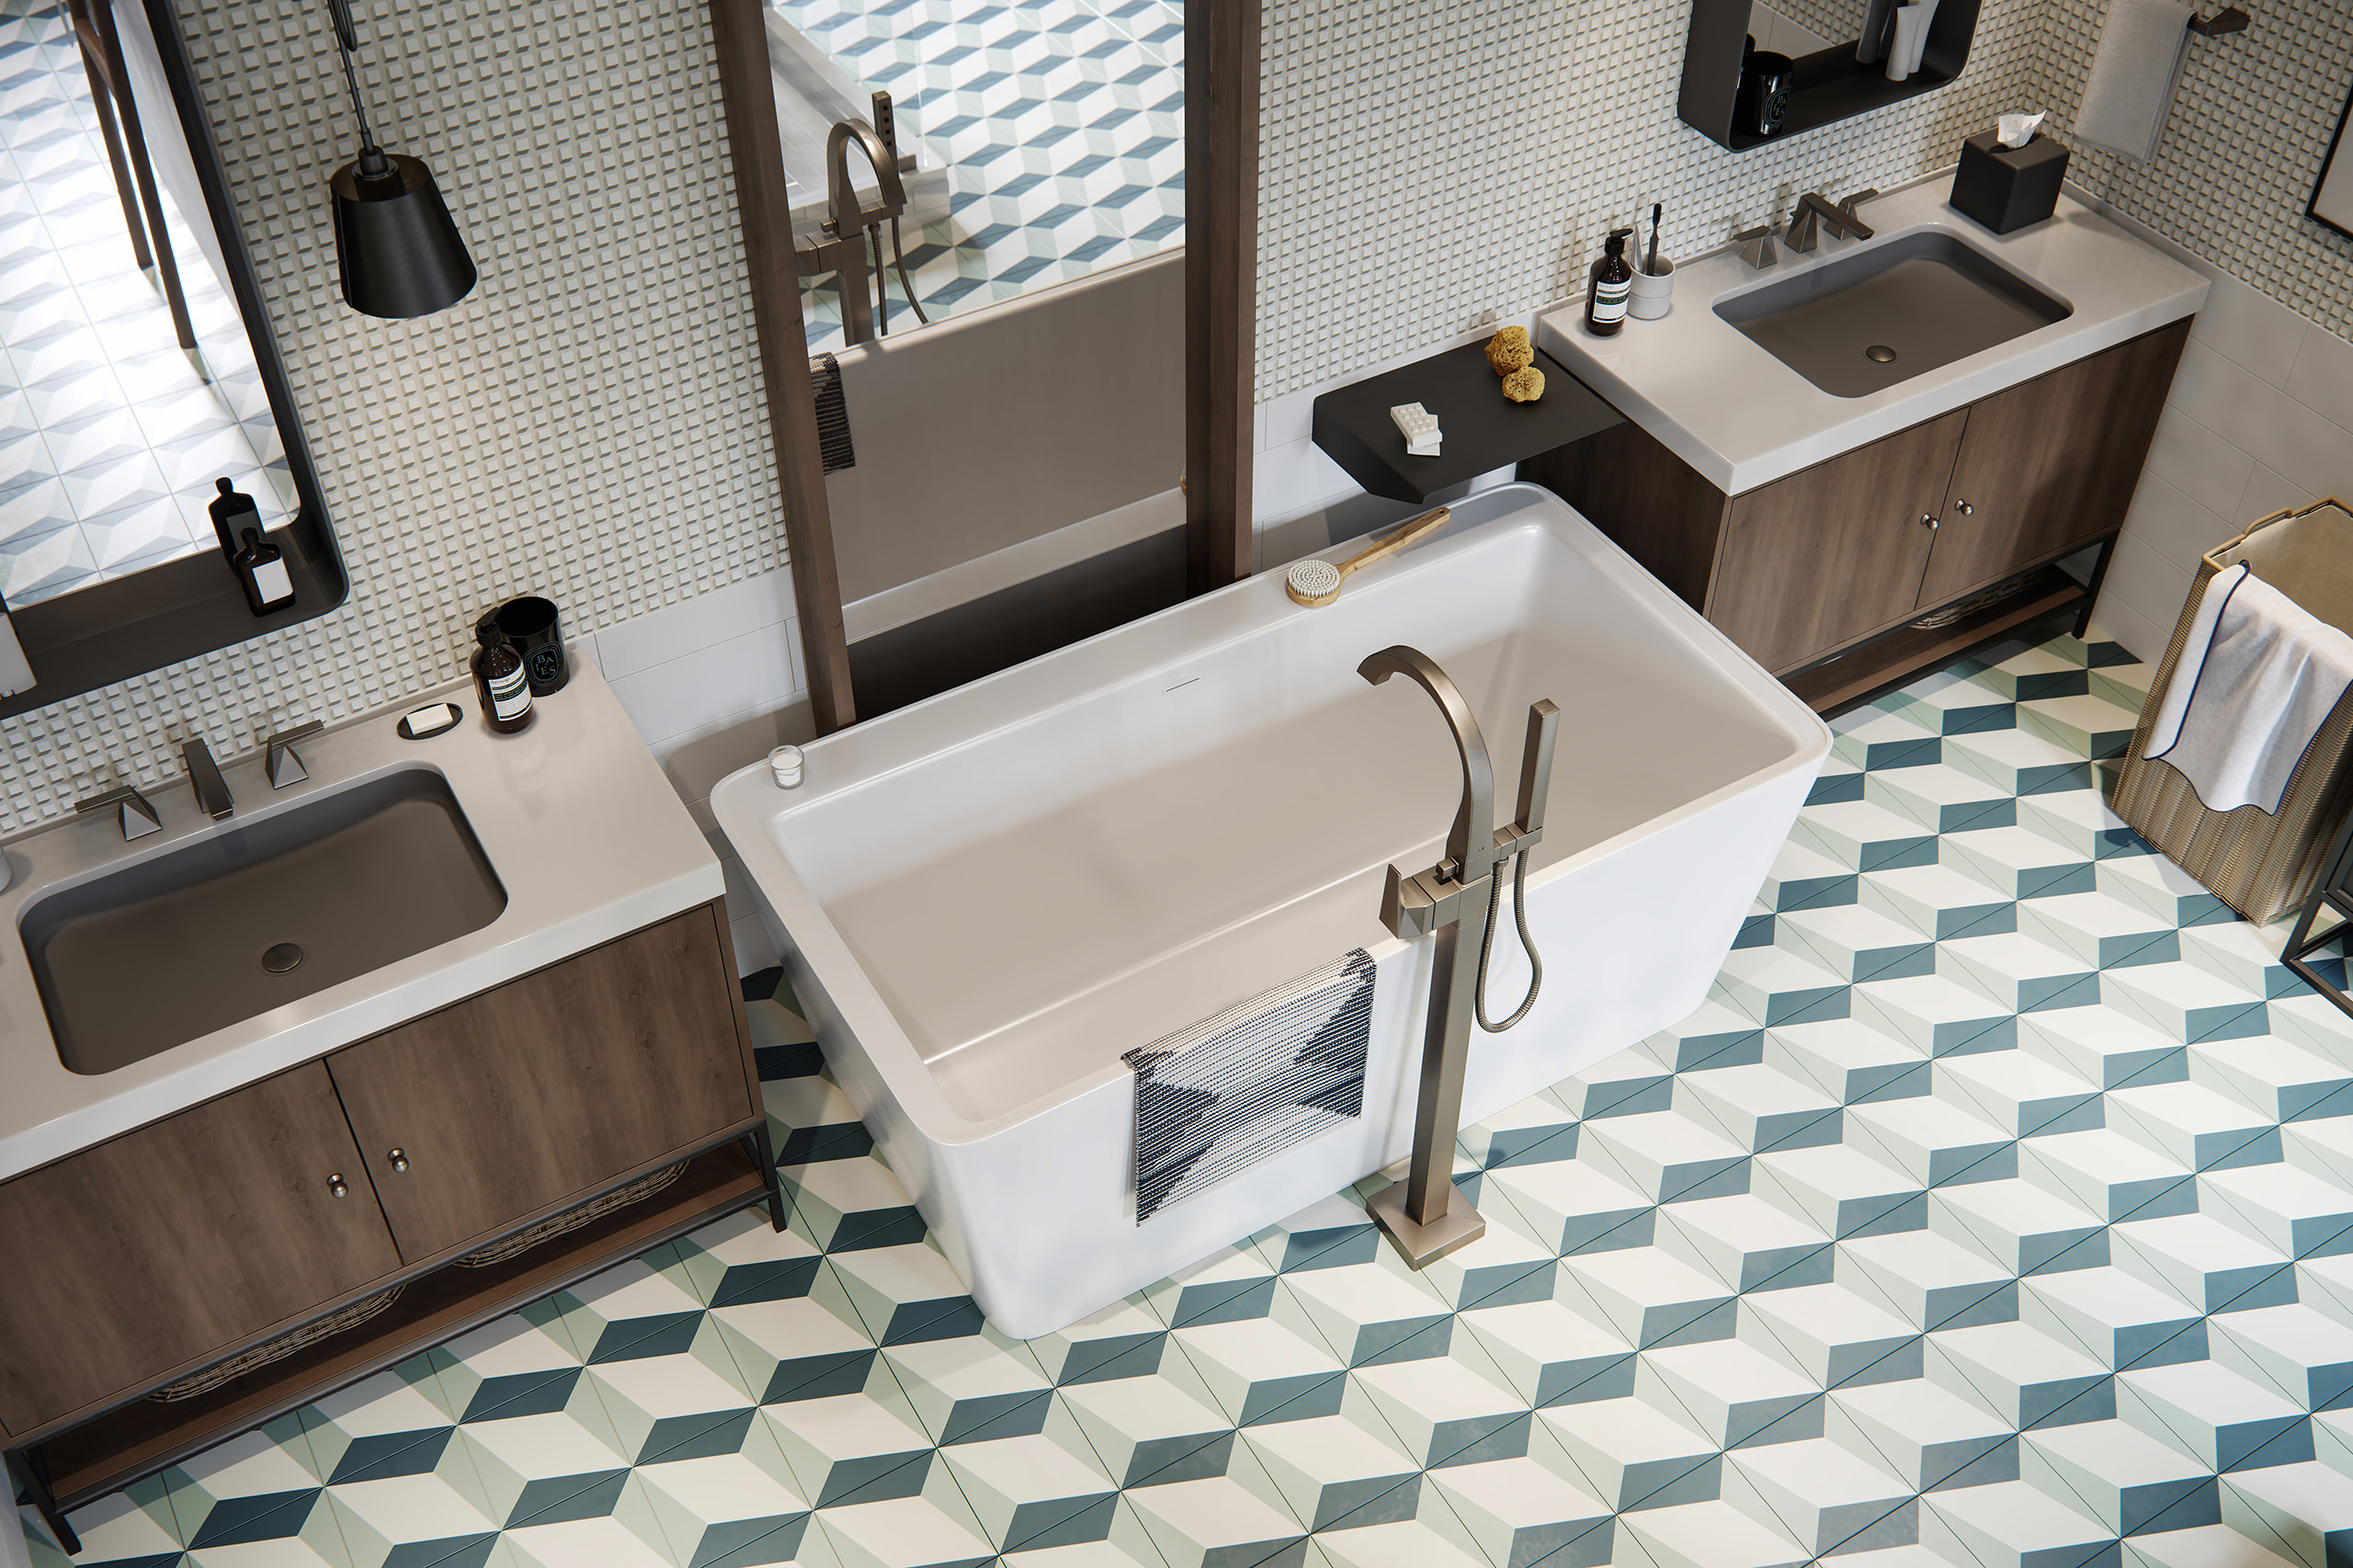 Top 3D view of Delta bath and sink faucets with a focus on geometric floor tiles